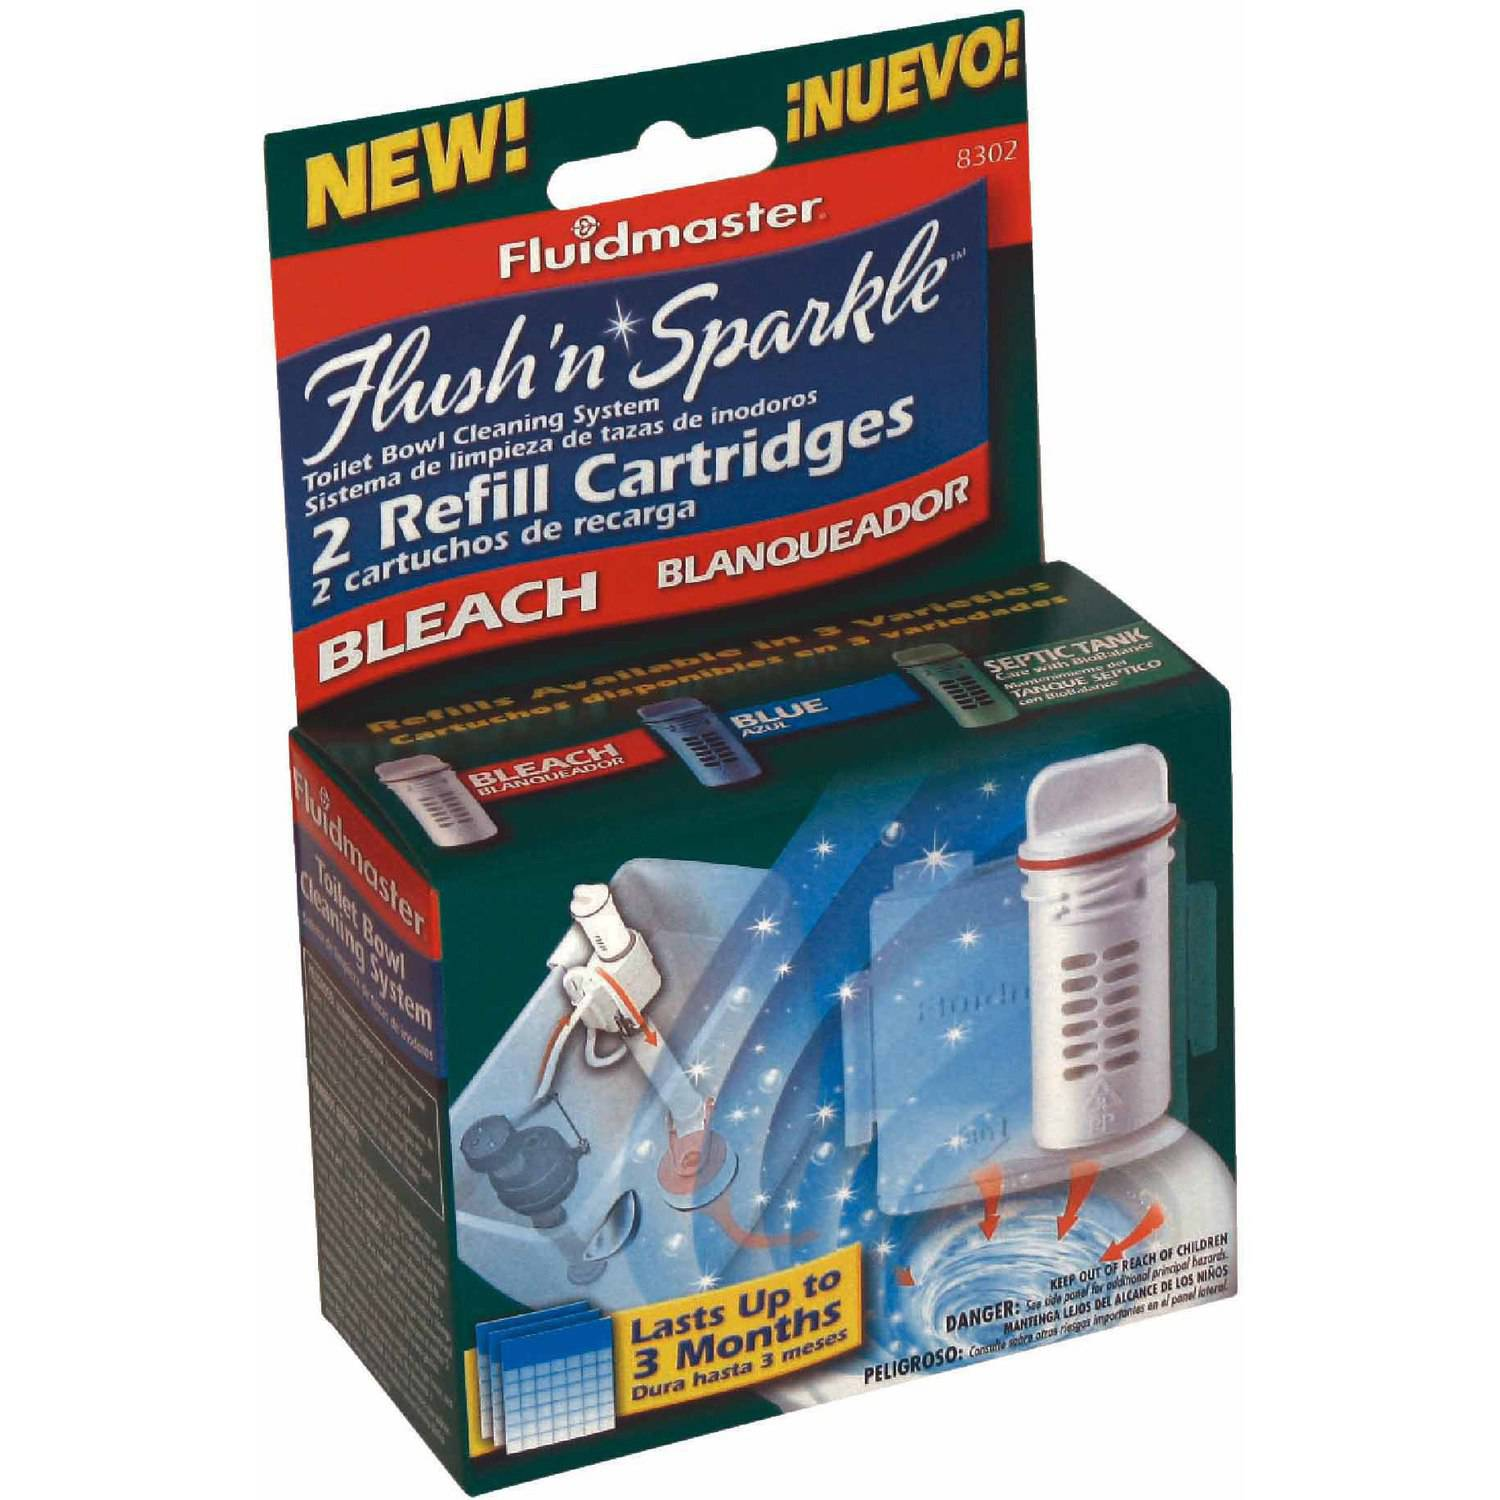 Fluidmaster 8302P8 Flush N Sparkle Bleach Replacement Cartridge